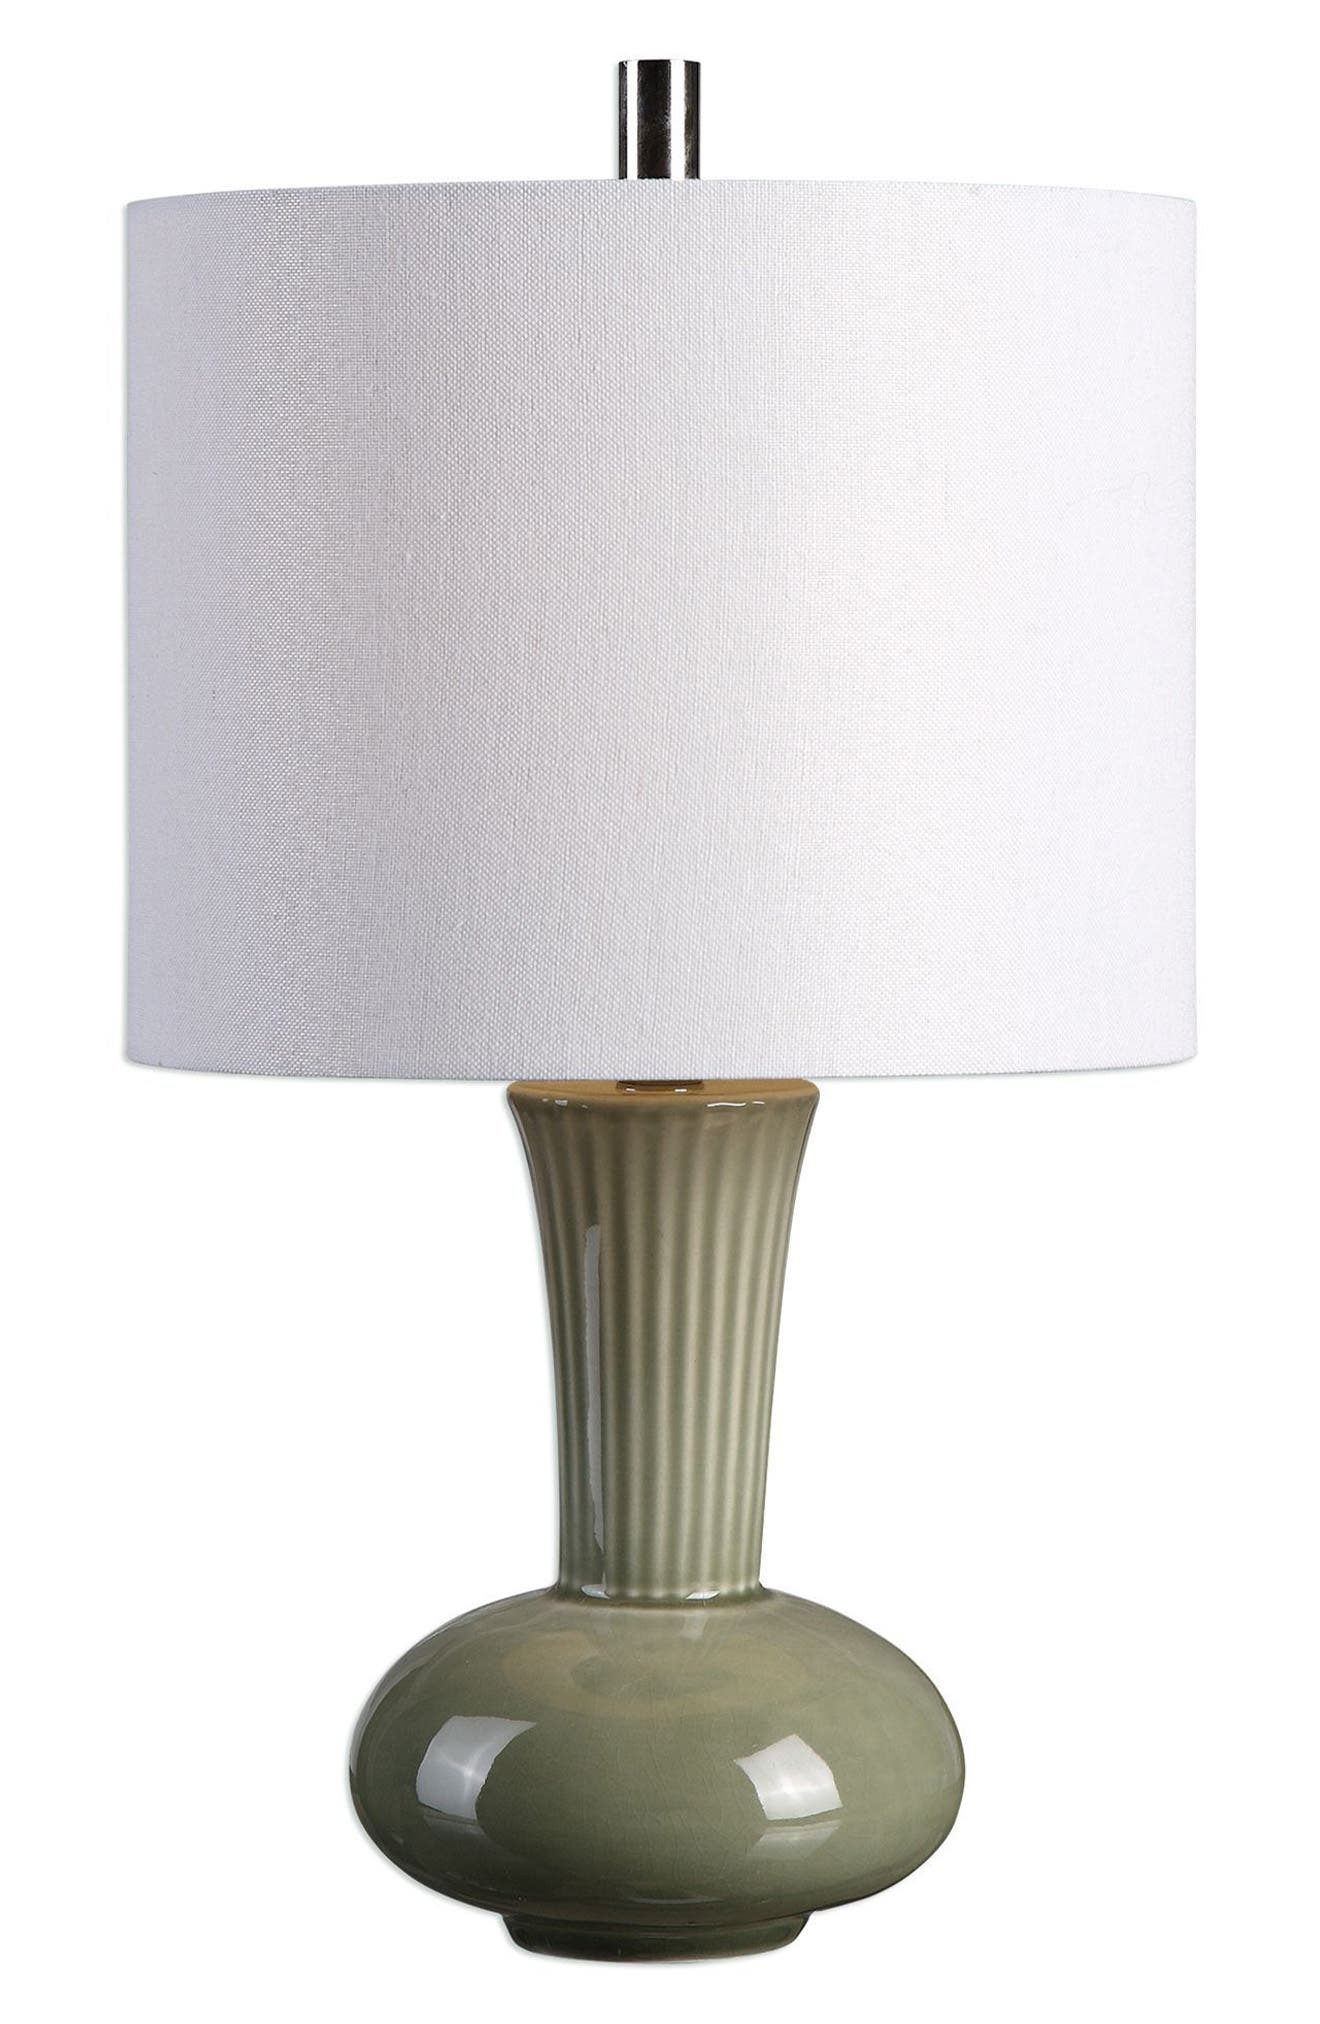 UTTERMOST,                             Luray Table Lamp,                             Main thumbnail 1, color,                             300